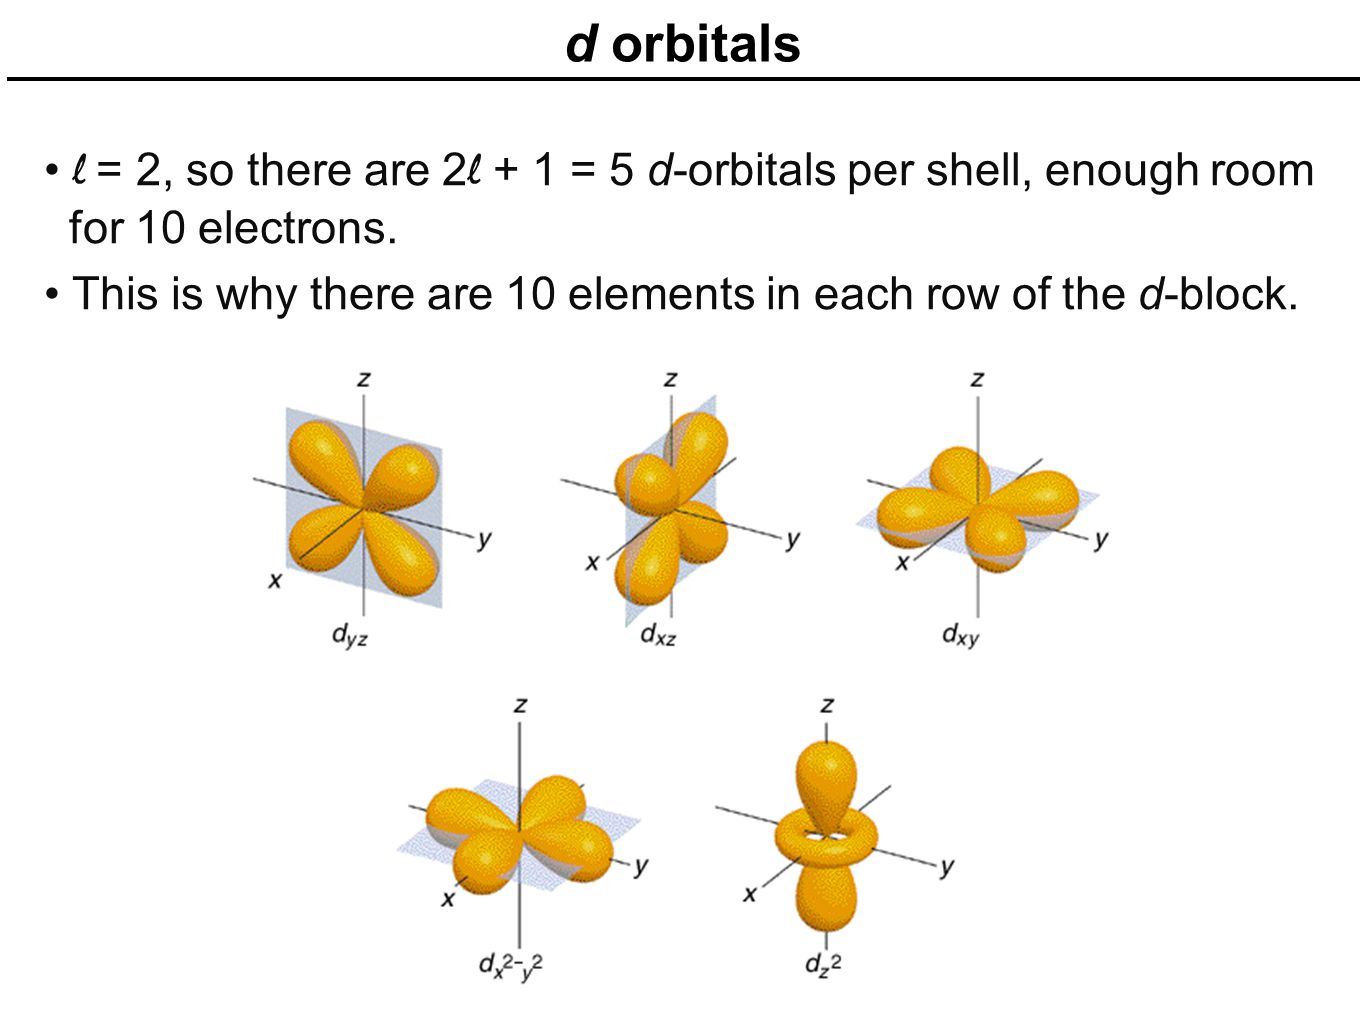 d orbitals l = 2, so there are 2l + 1 = 5 d-orbitals per shell, enough room. for 10 electrons.